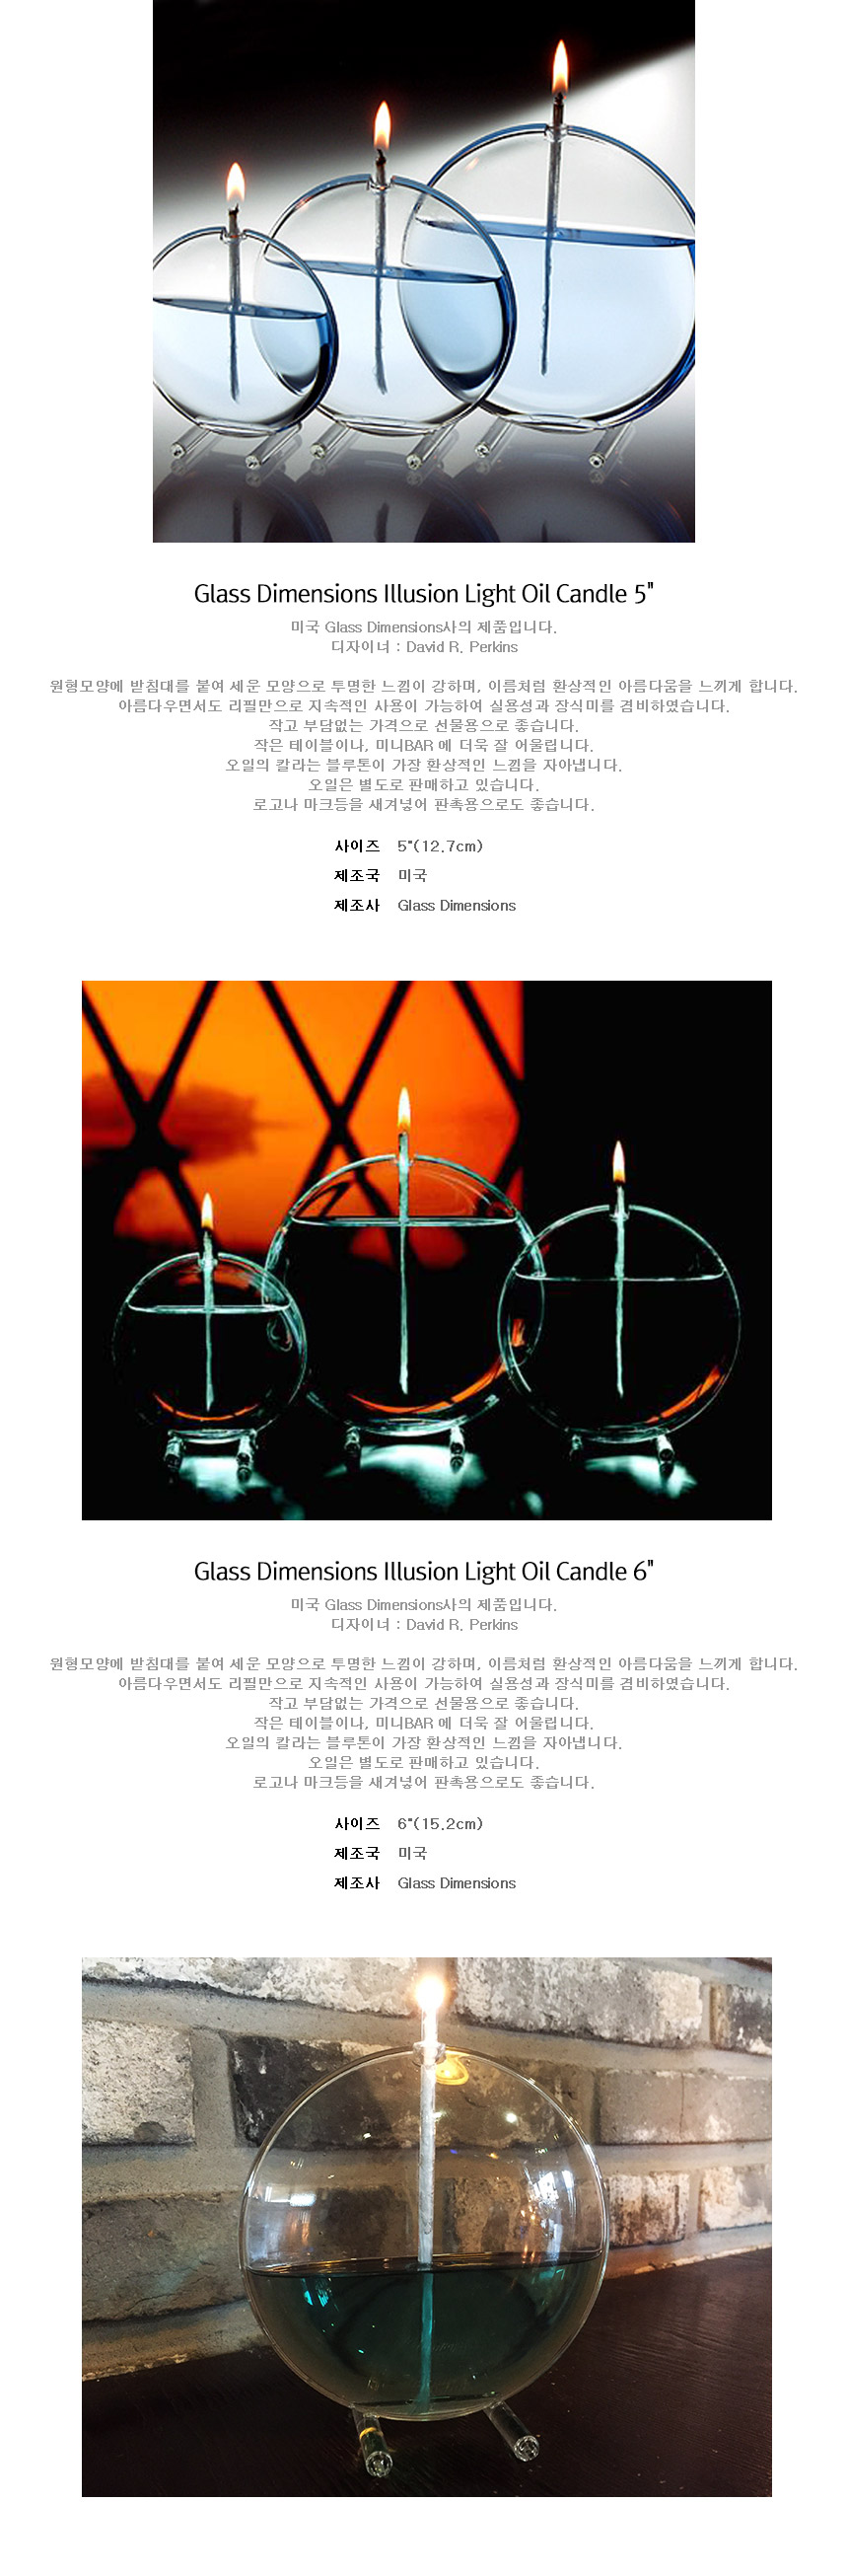 램프플러스 Glass Dimensions Illusion Light Oil Candle